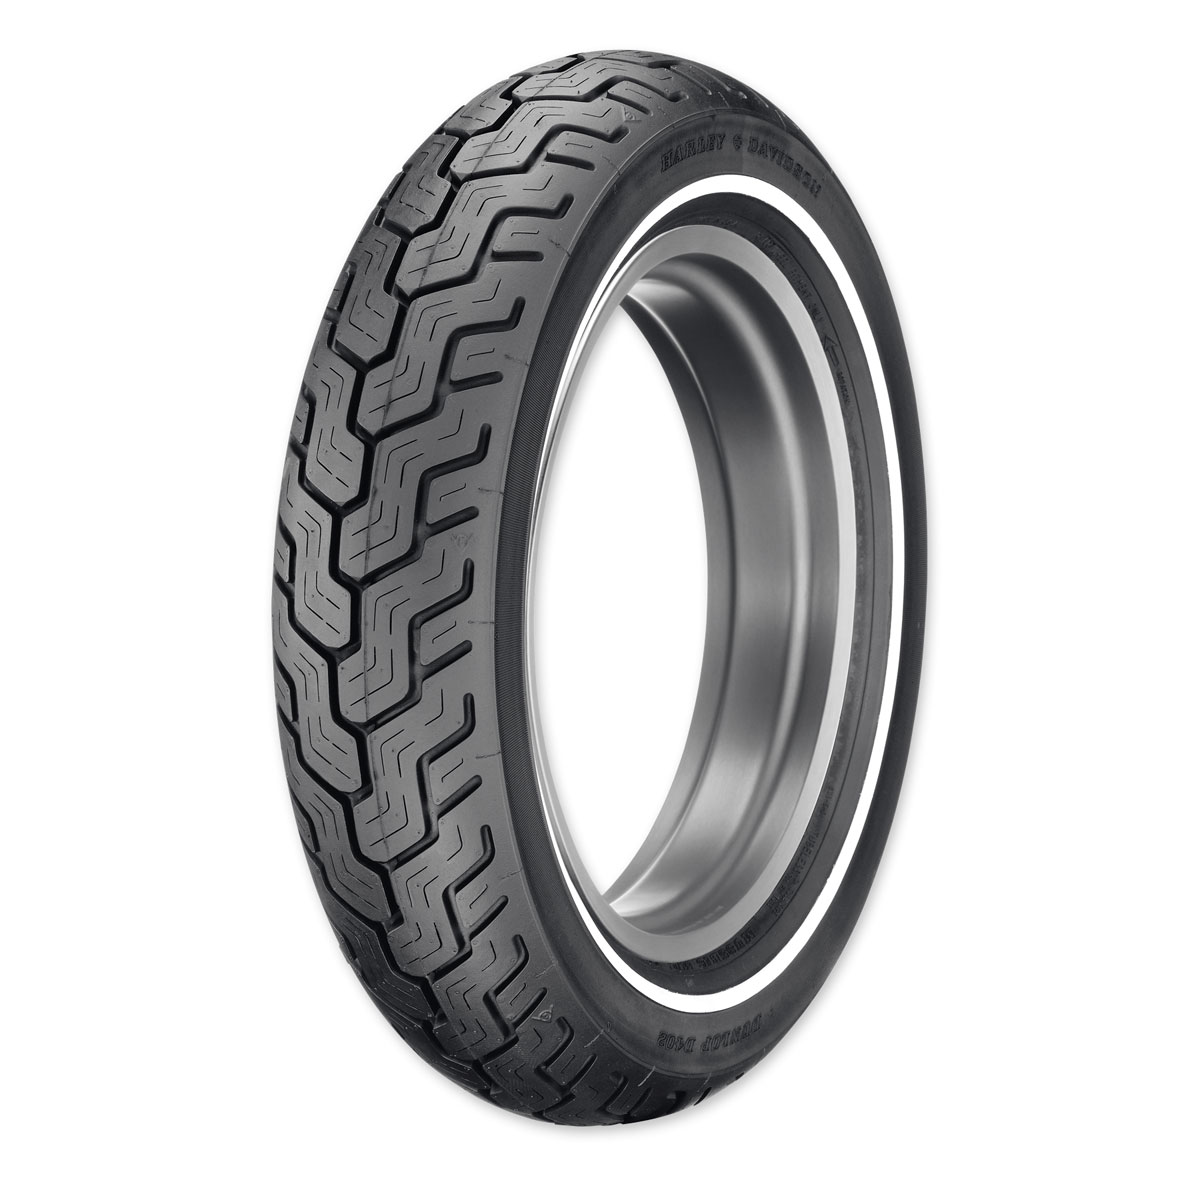 Dunlop D402 MU85B16 Narrow Whitewall Rear Tire